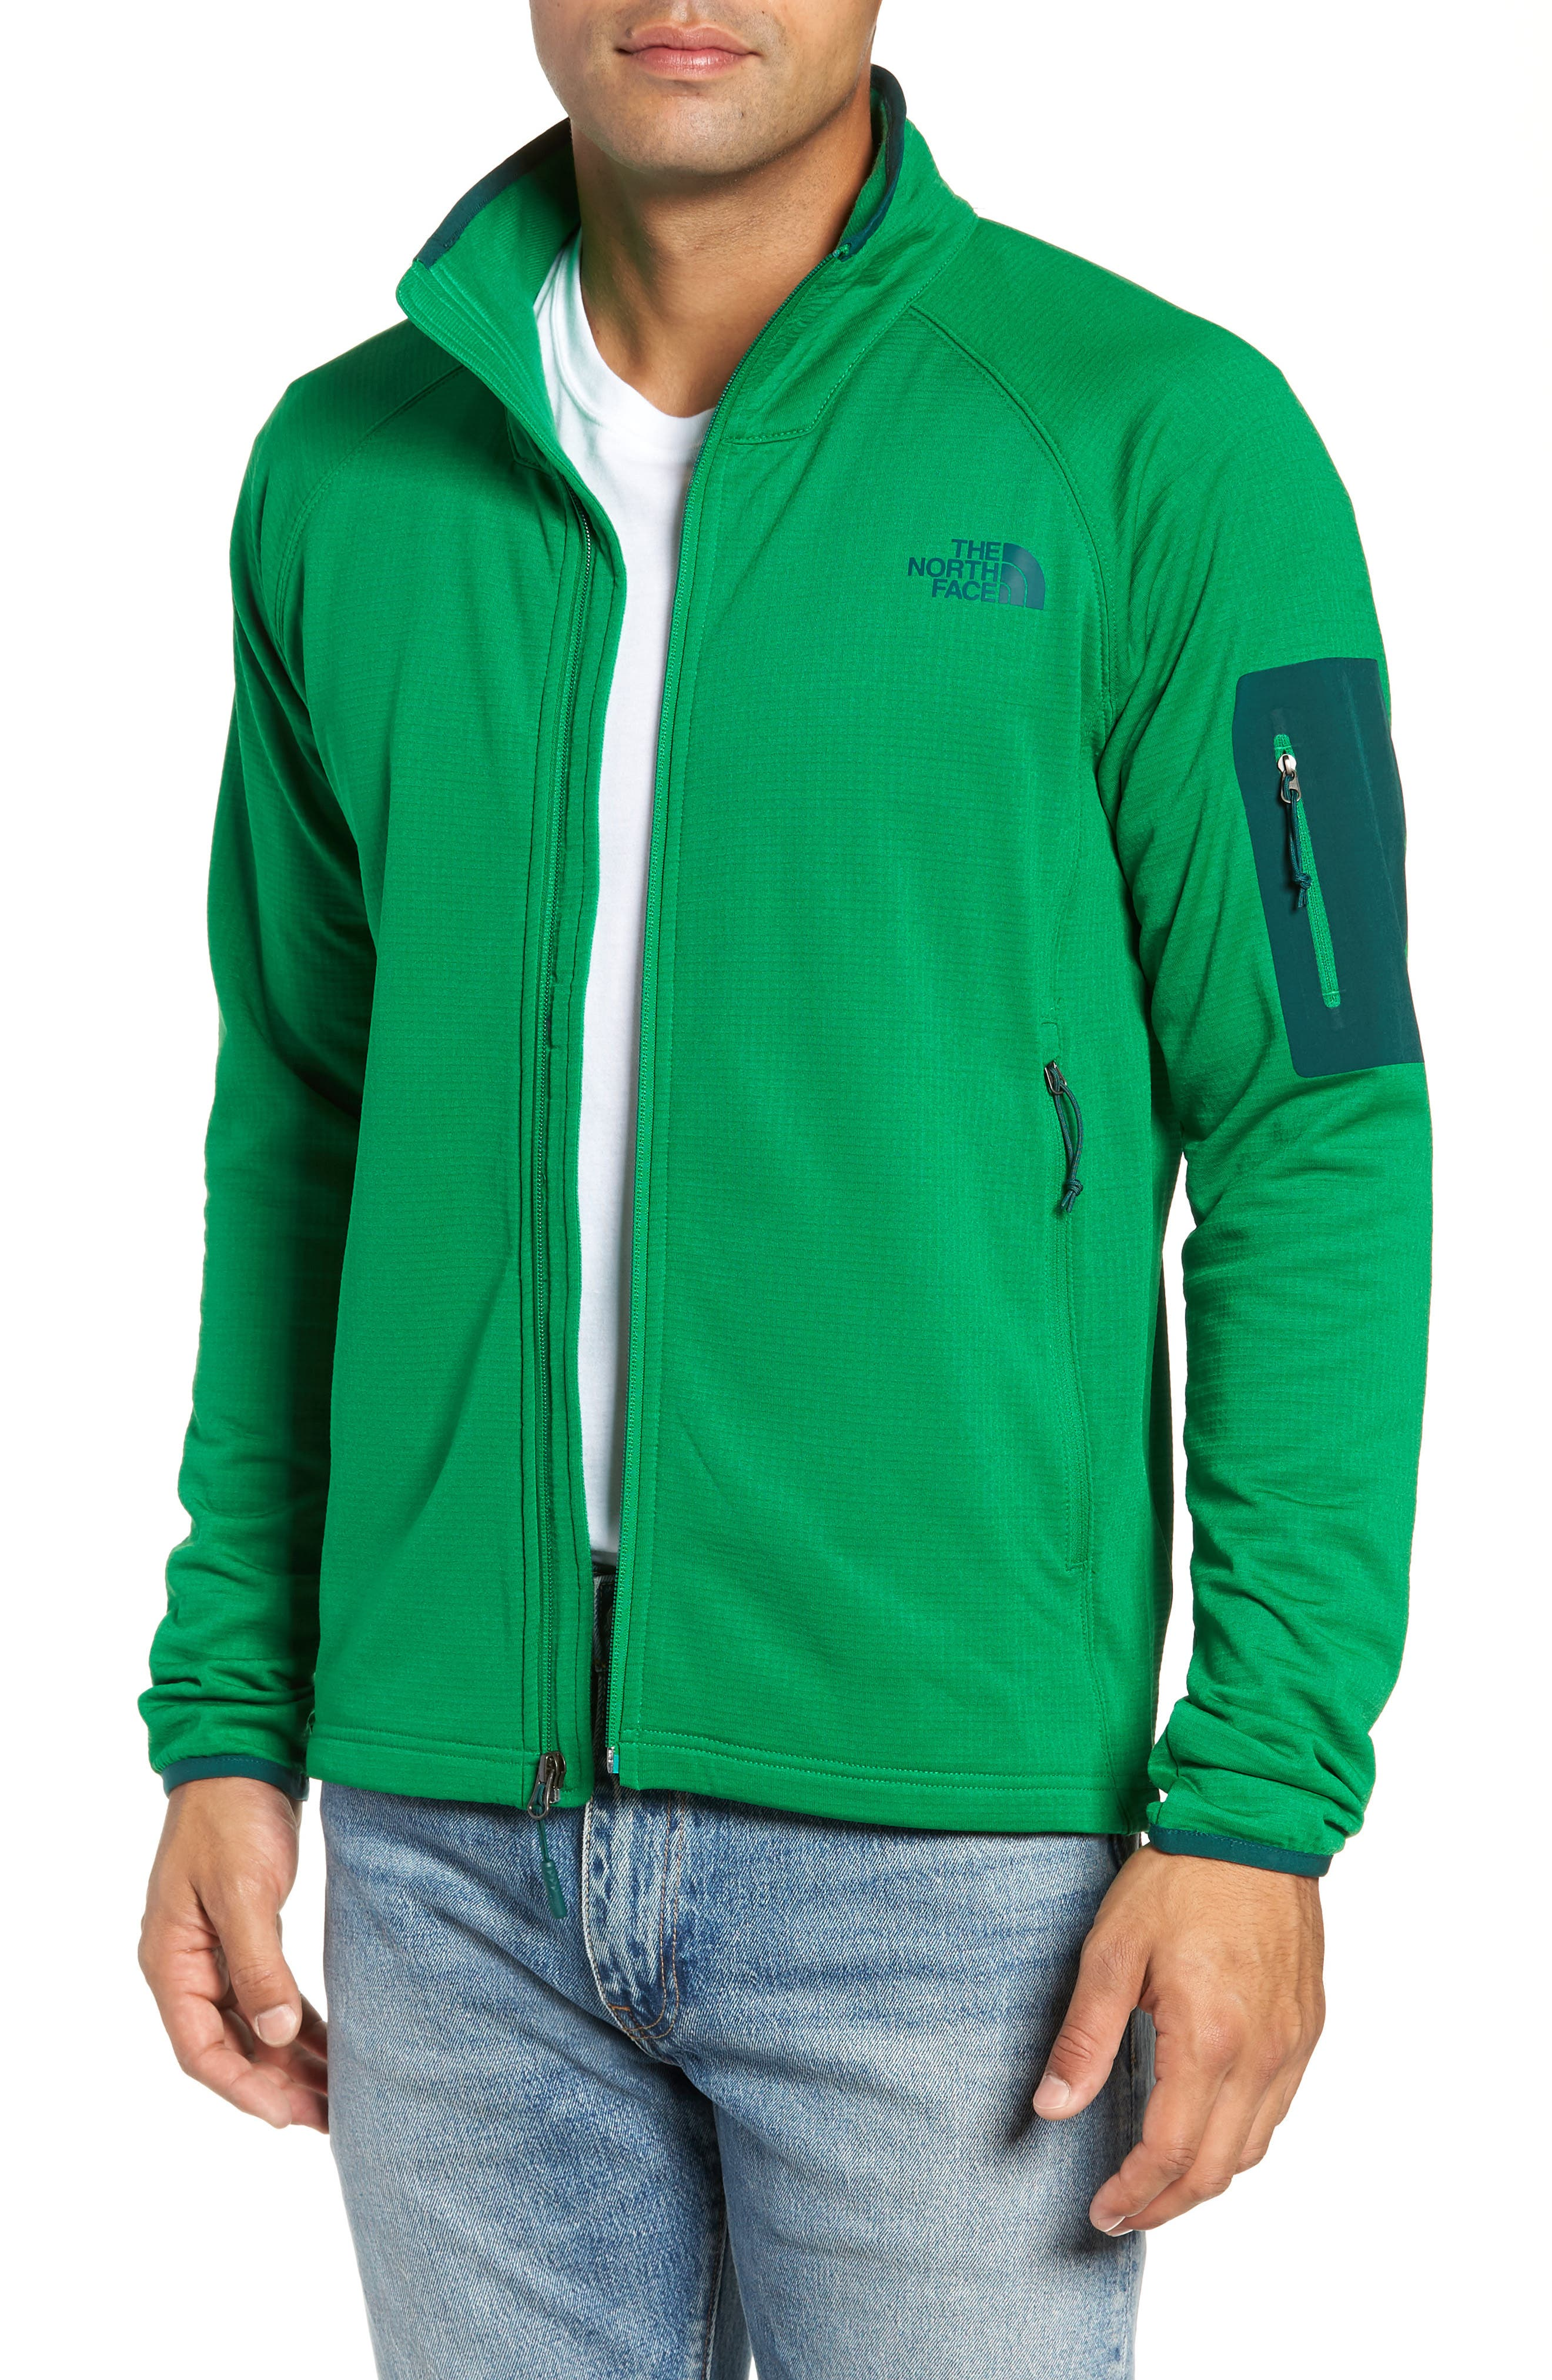 THE NORTH FACE Borod Jacket, Main, color, 310